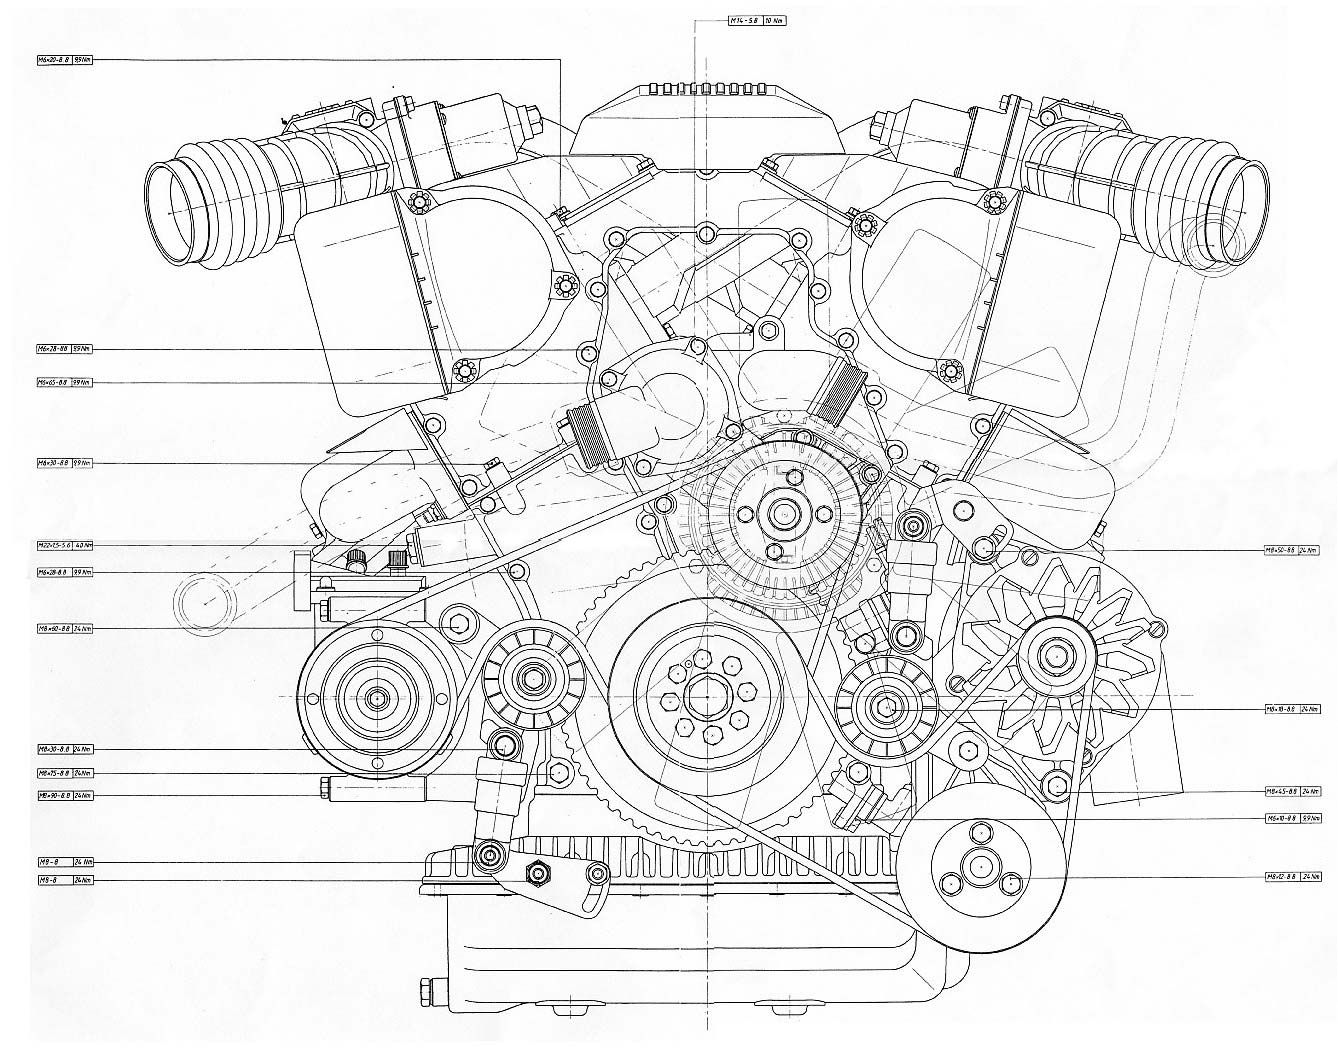 Mechanical engineering drawing google search sketches mechanical engineering drawing google search malvernweather Gallery